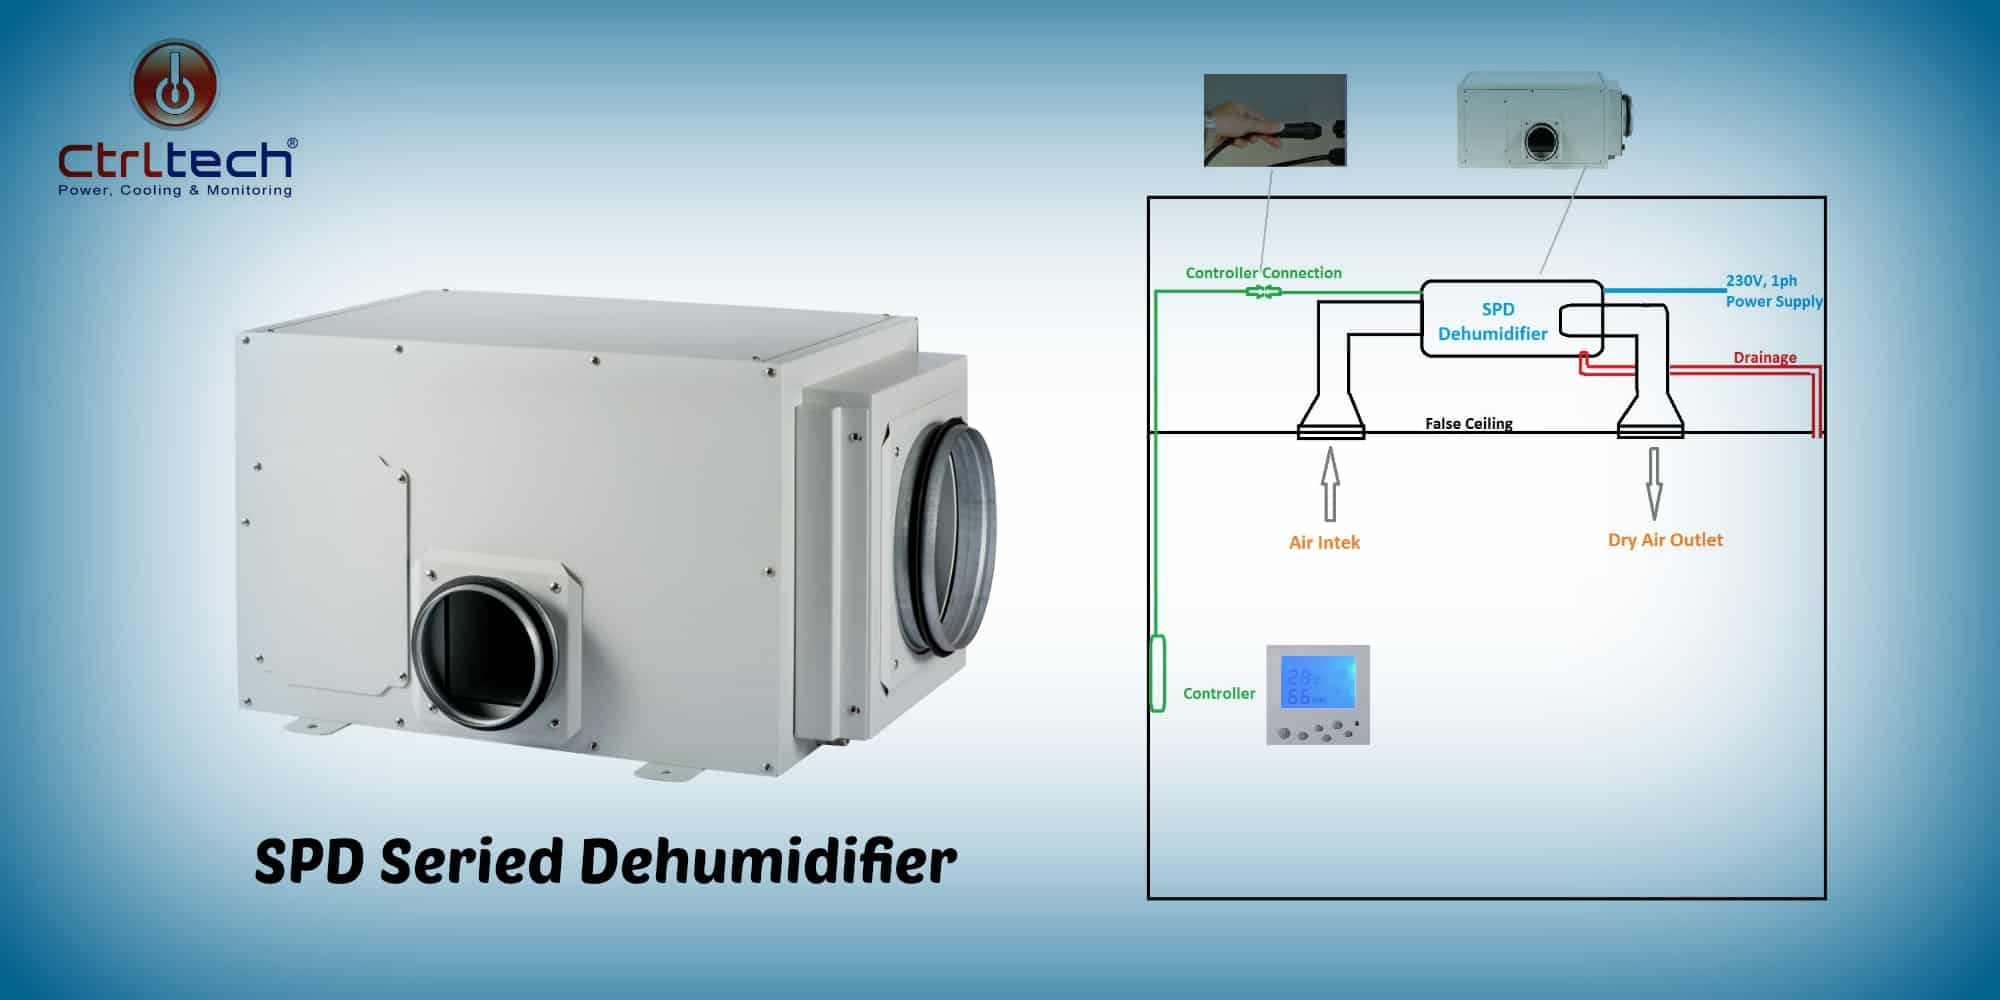 Indoor pool dehumidifier price. Dehumidifier sizing